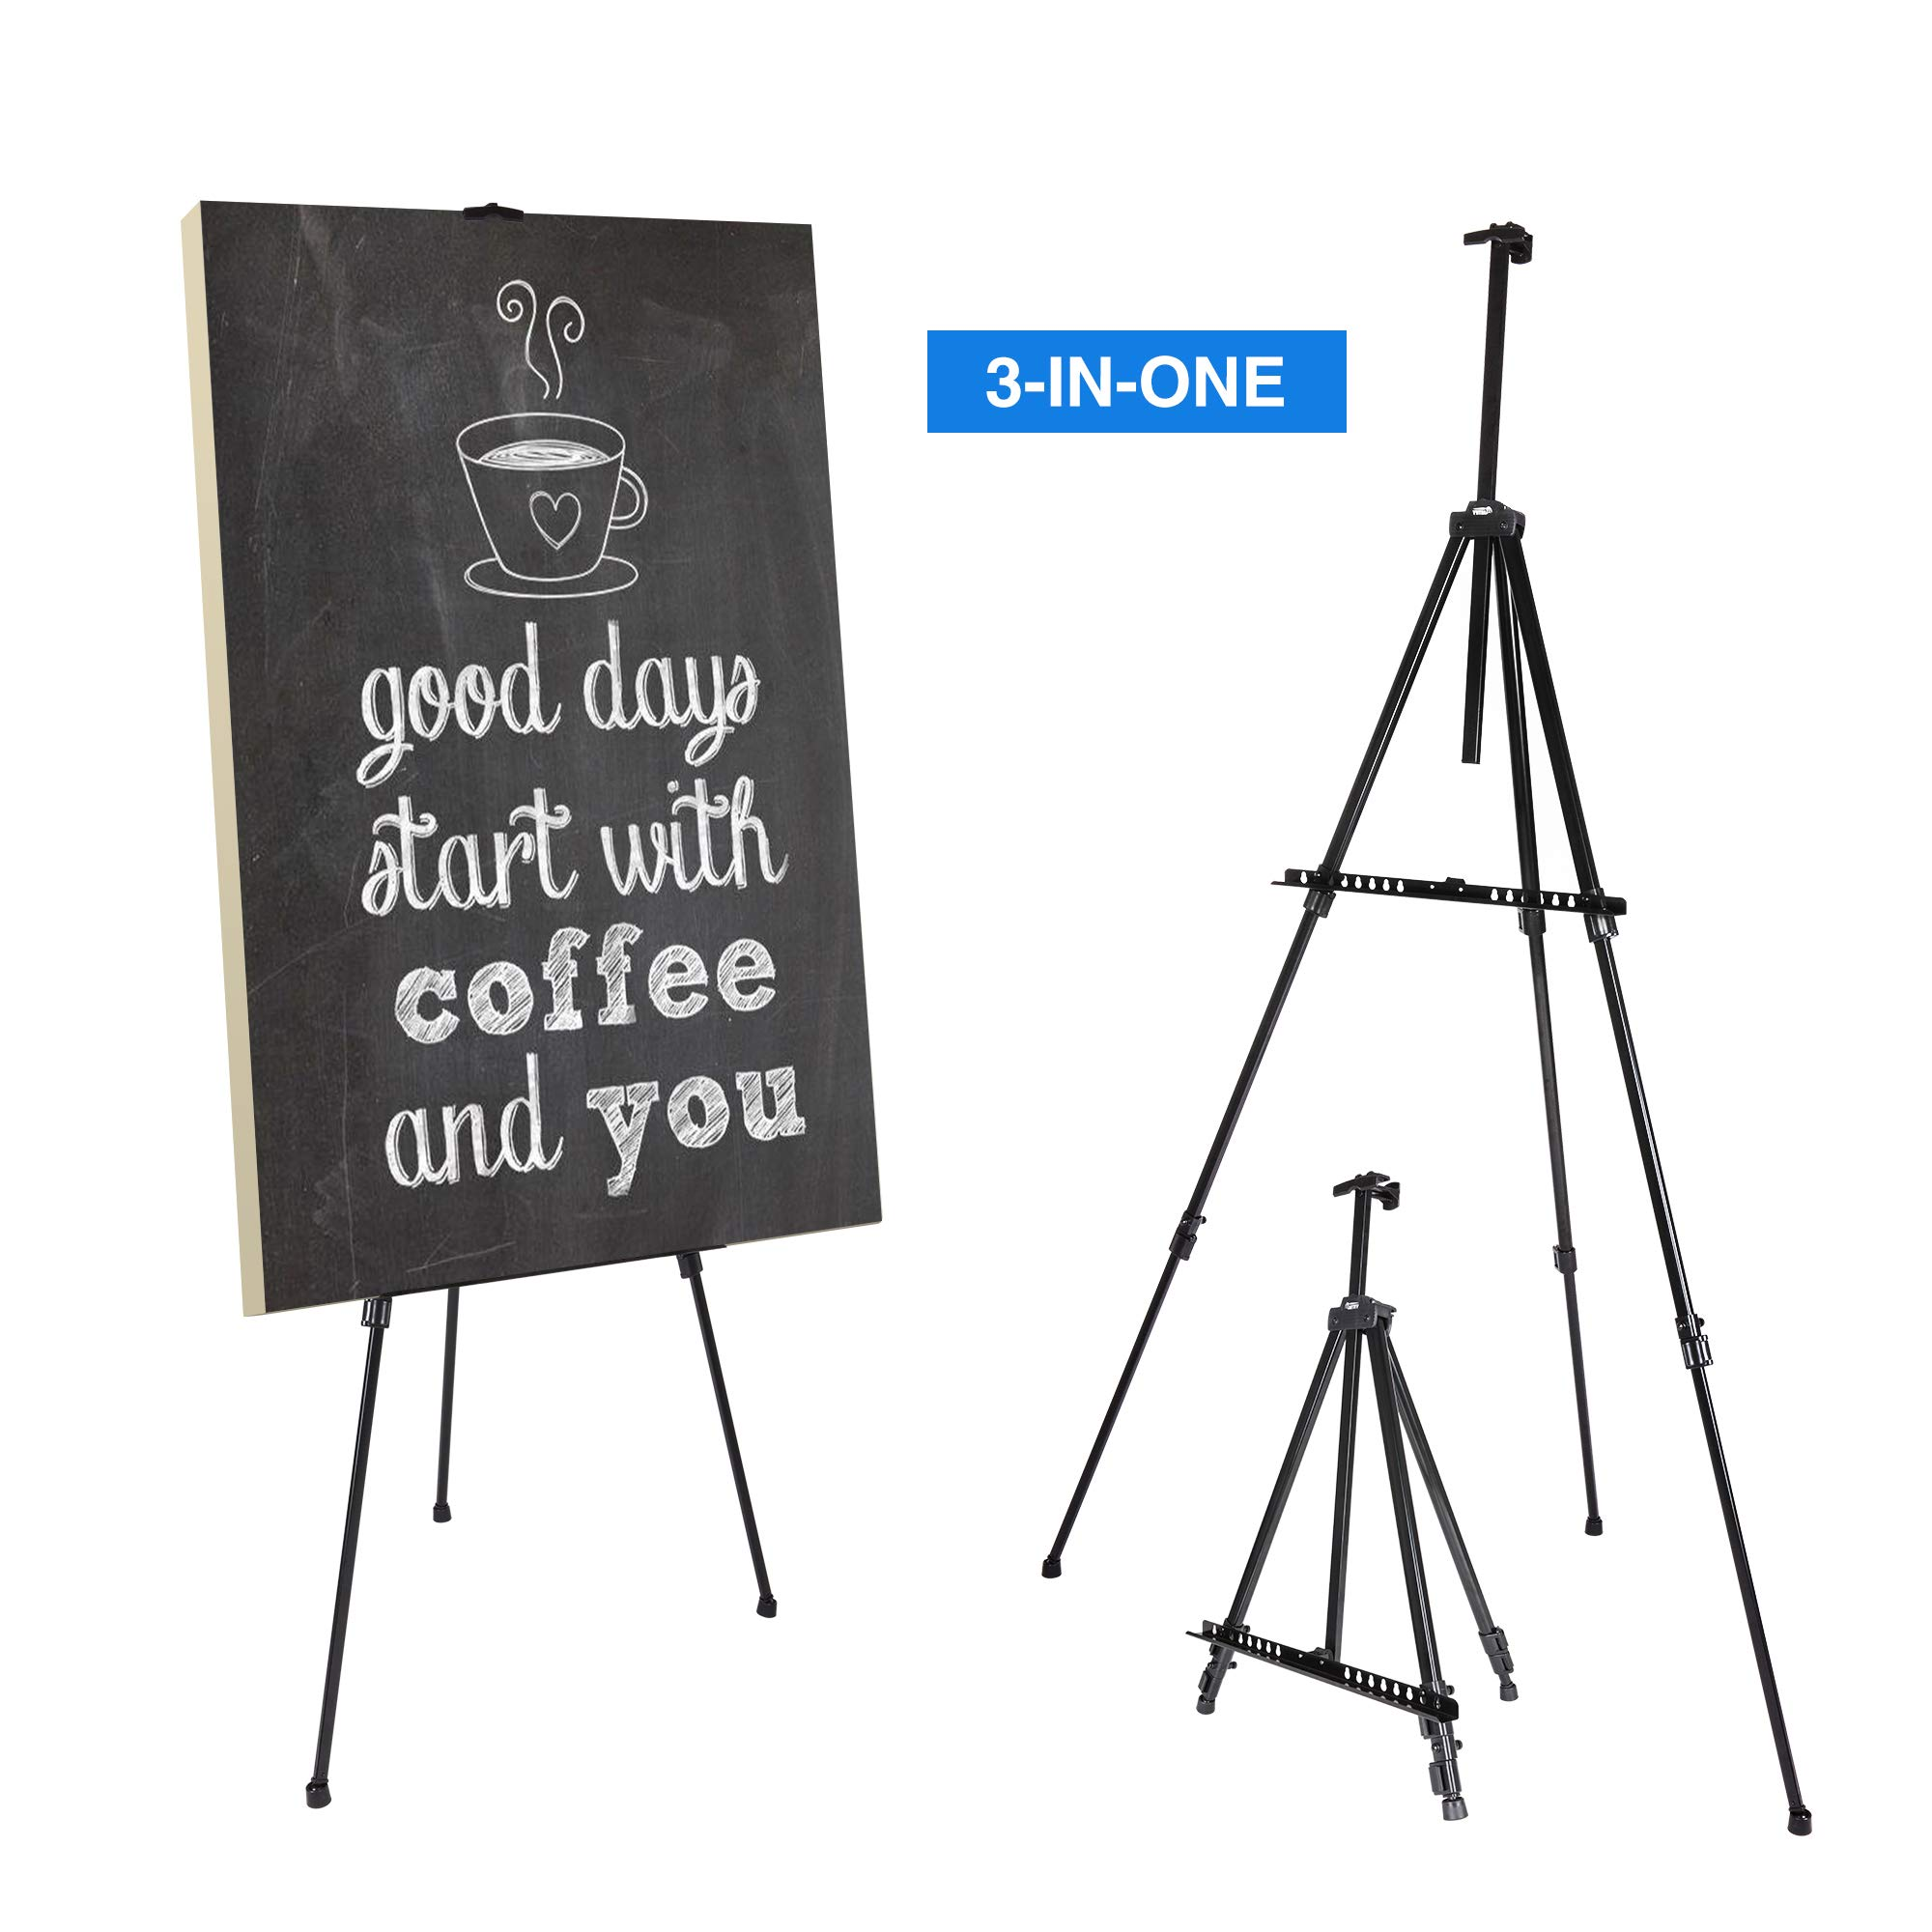 Artify 73 Inches Double Tier Easel Stand, Aluminum Tripod for Painting and Display with an Environmental Friendly Carrying Bag and Spare Parts